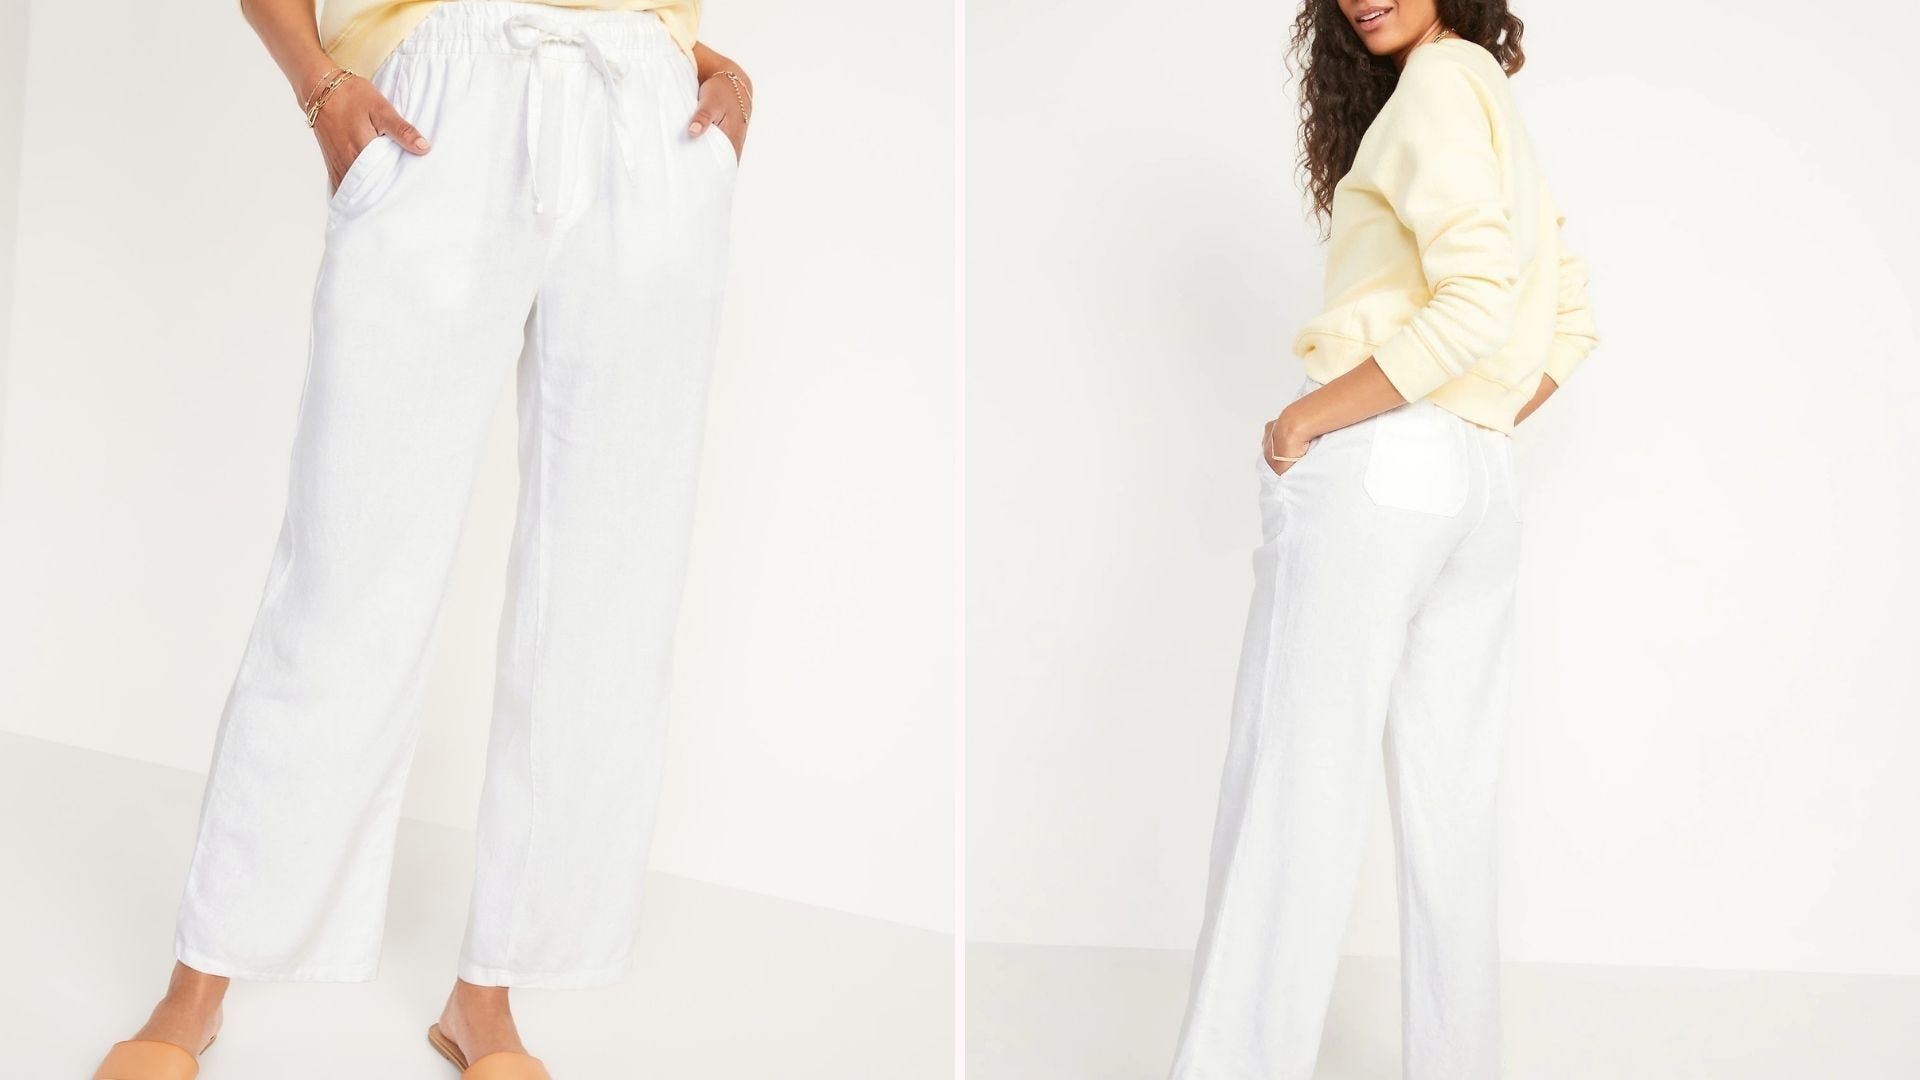 Front and back view of a woman wearing loose white pants and a yellow top